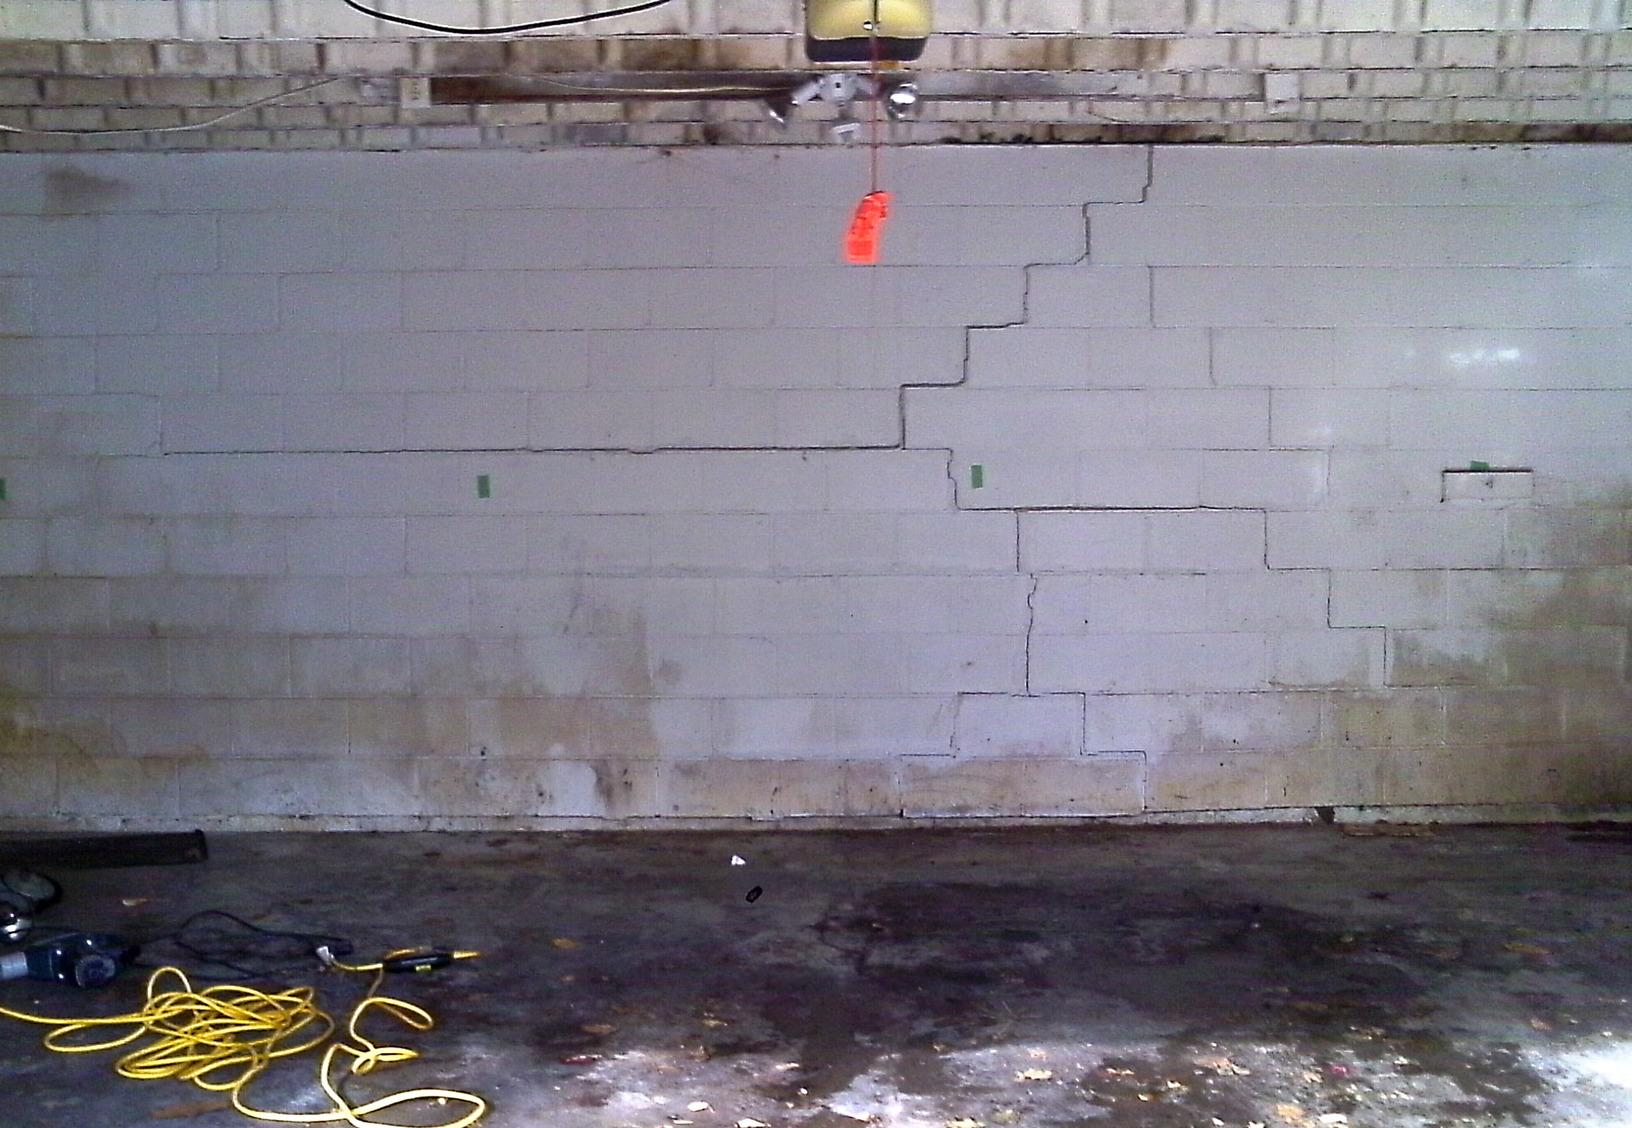 Bowing walls are a result of hydrostatic pressure causing the walls to bow inwards and cracks are always a great indicator of compromised foundation walls.